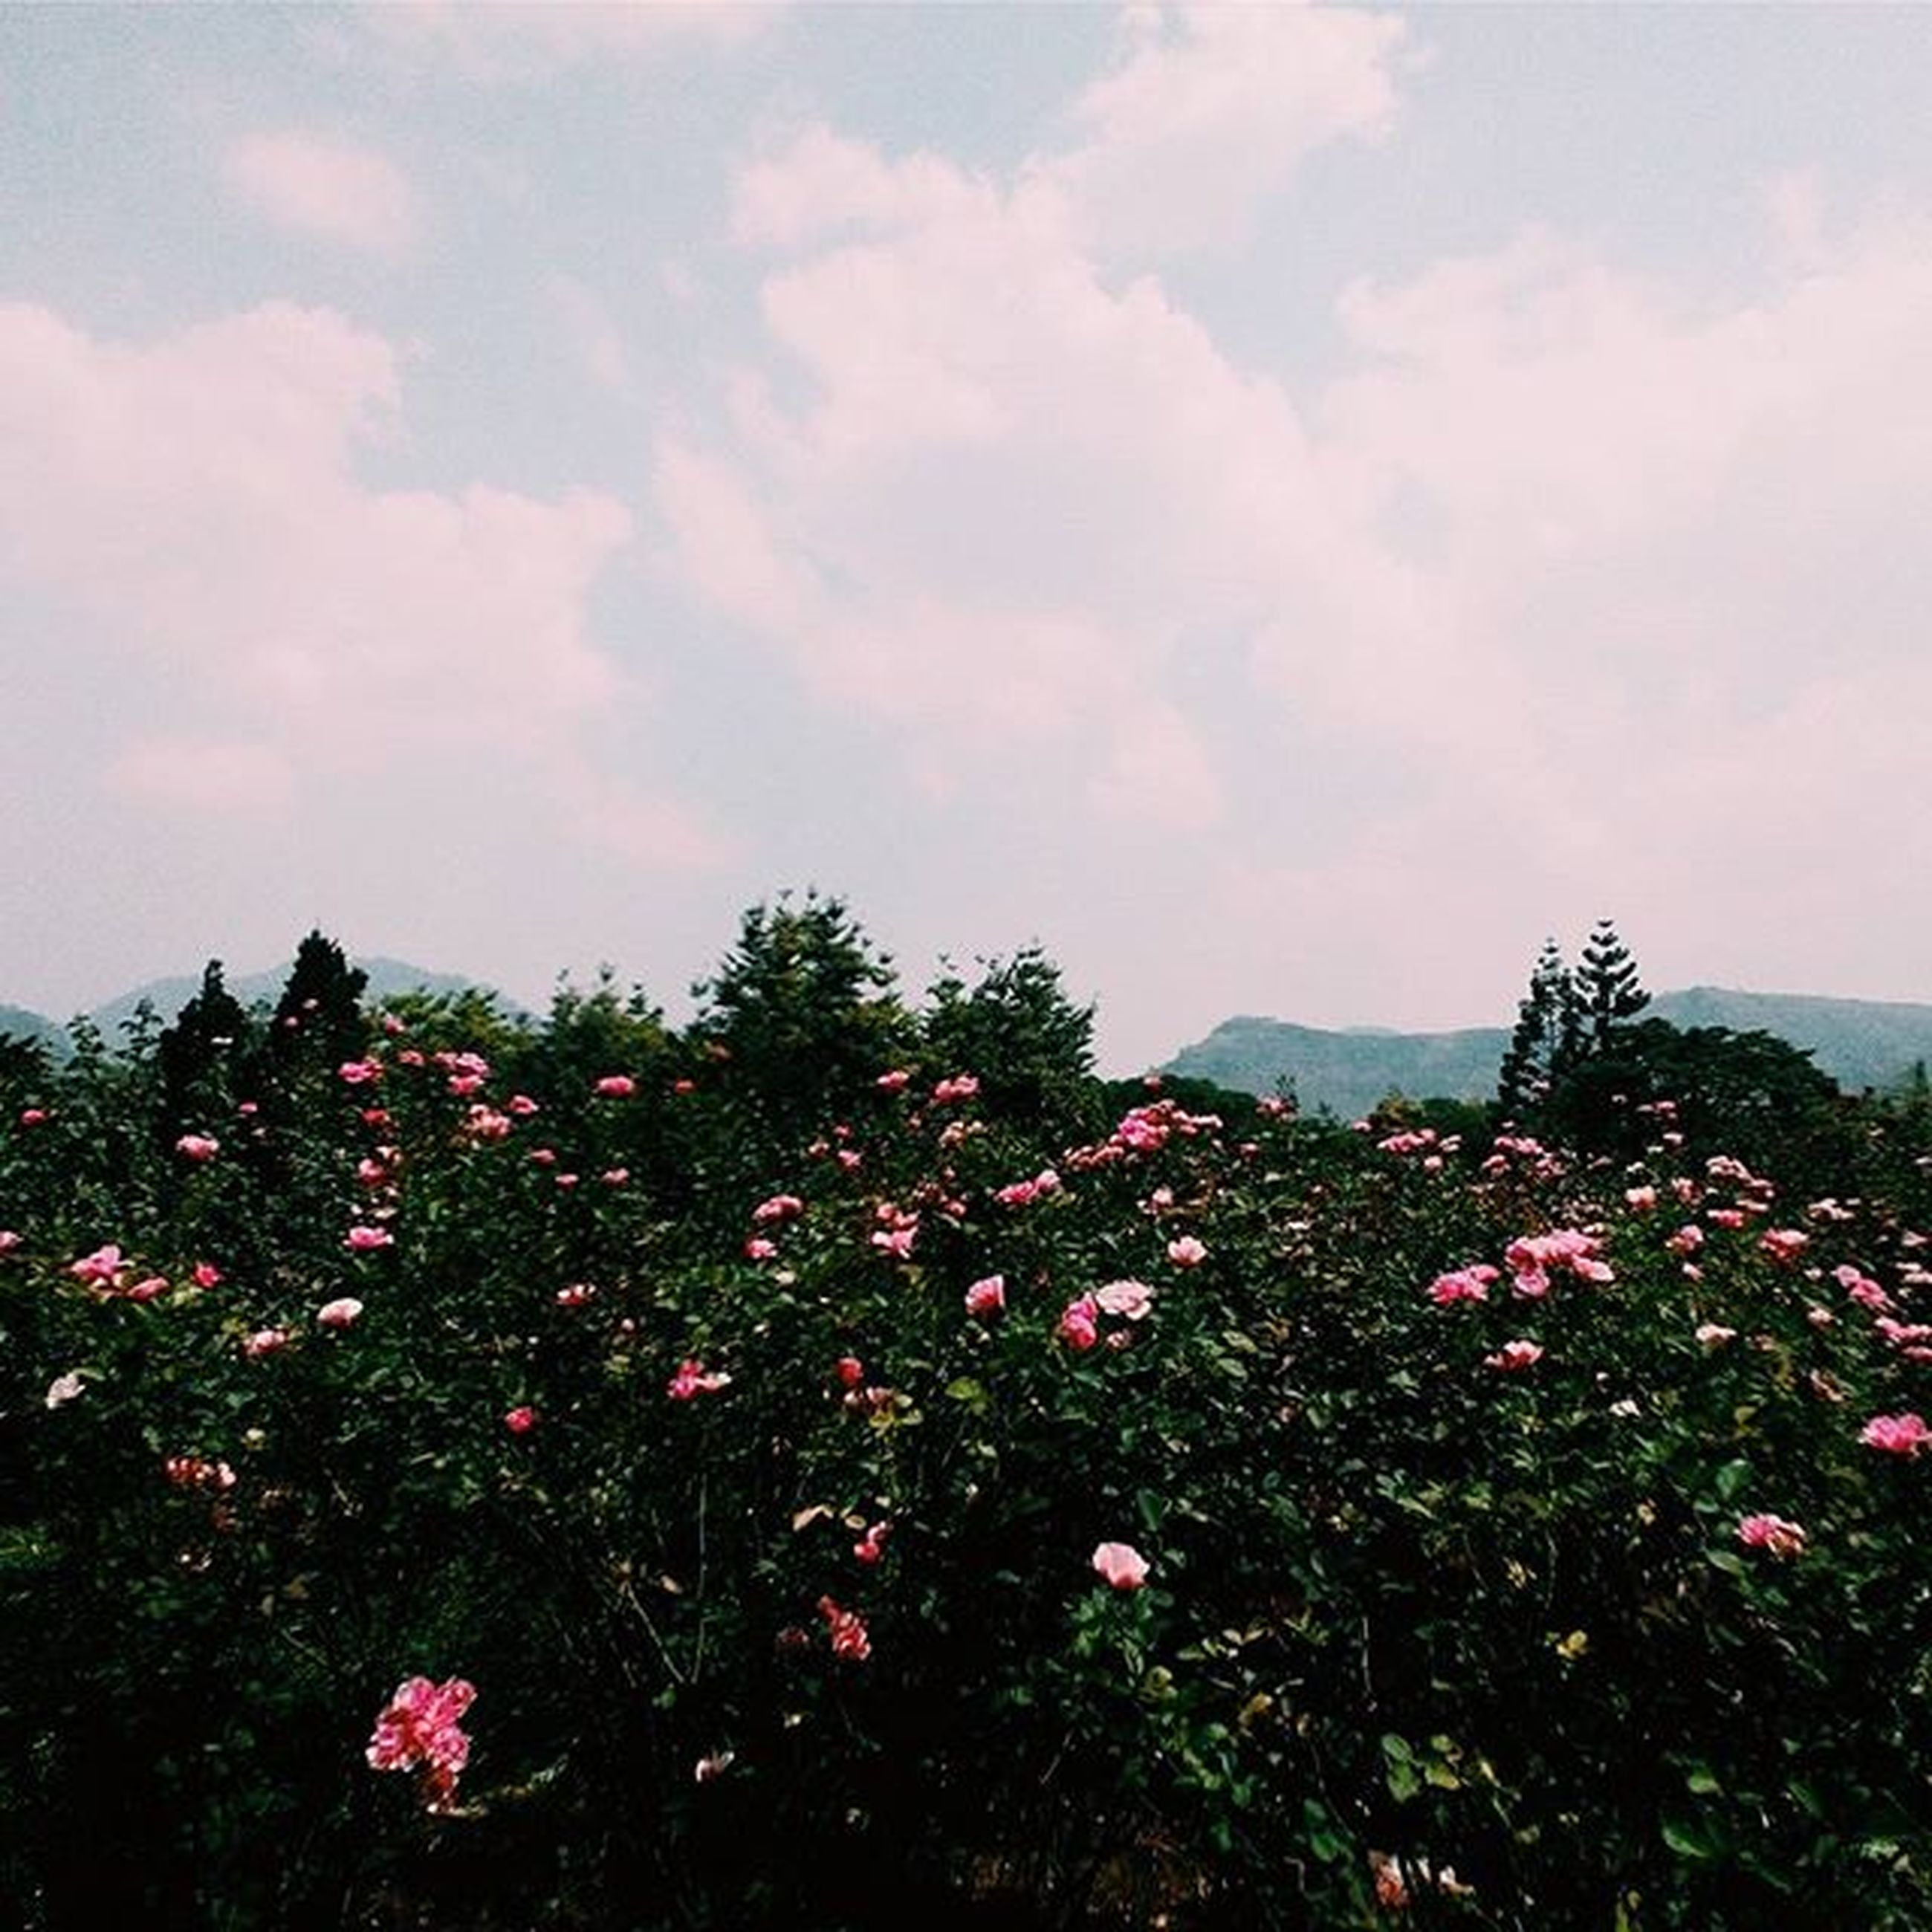 flower, sky, beauty in nature, growth, nature, freshness, cloud - sky, tree, plant, tranquil scene, tranquility, scenics, landscape, blooming, fragility, mountain, cloud, cloudy, in bloom, outdoors